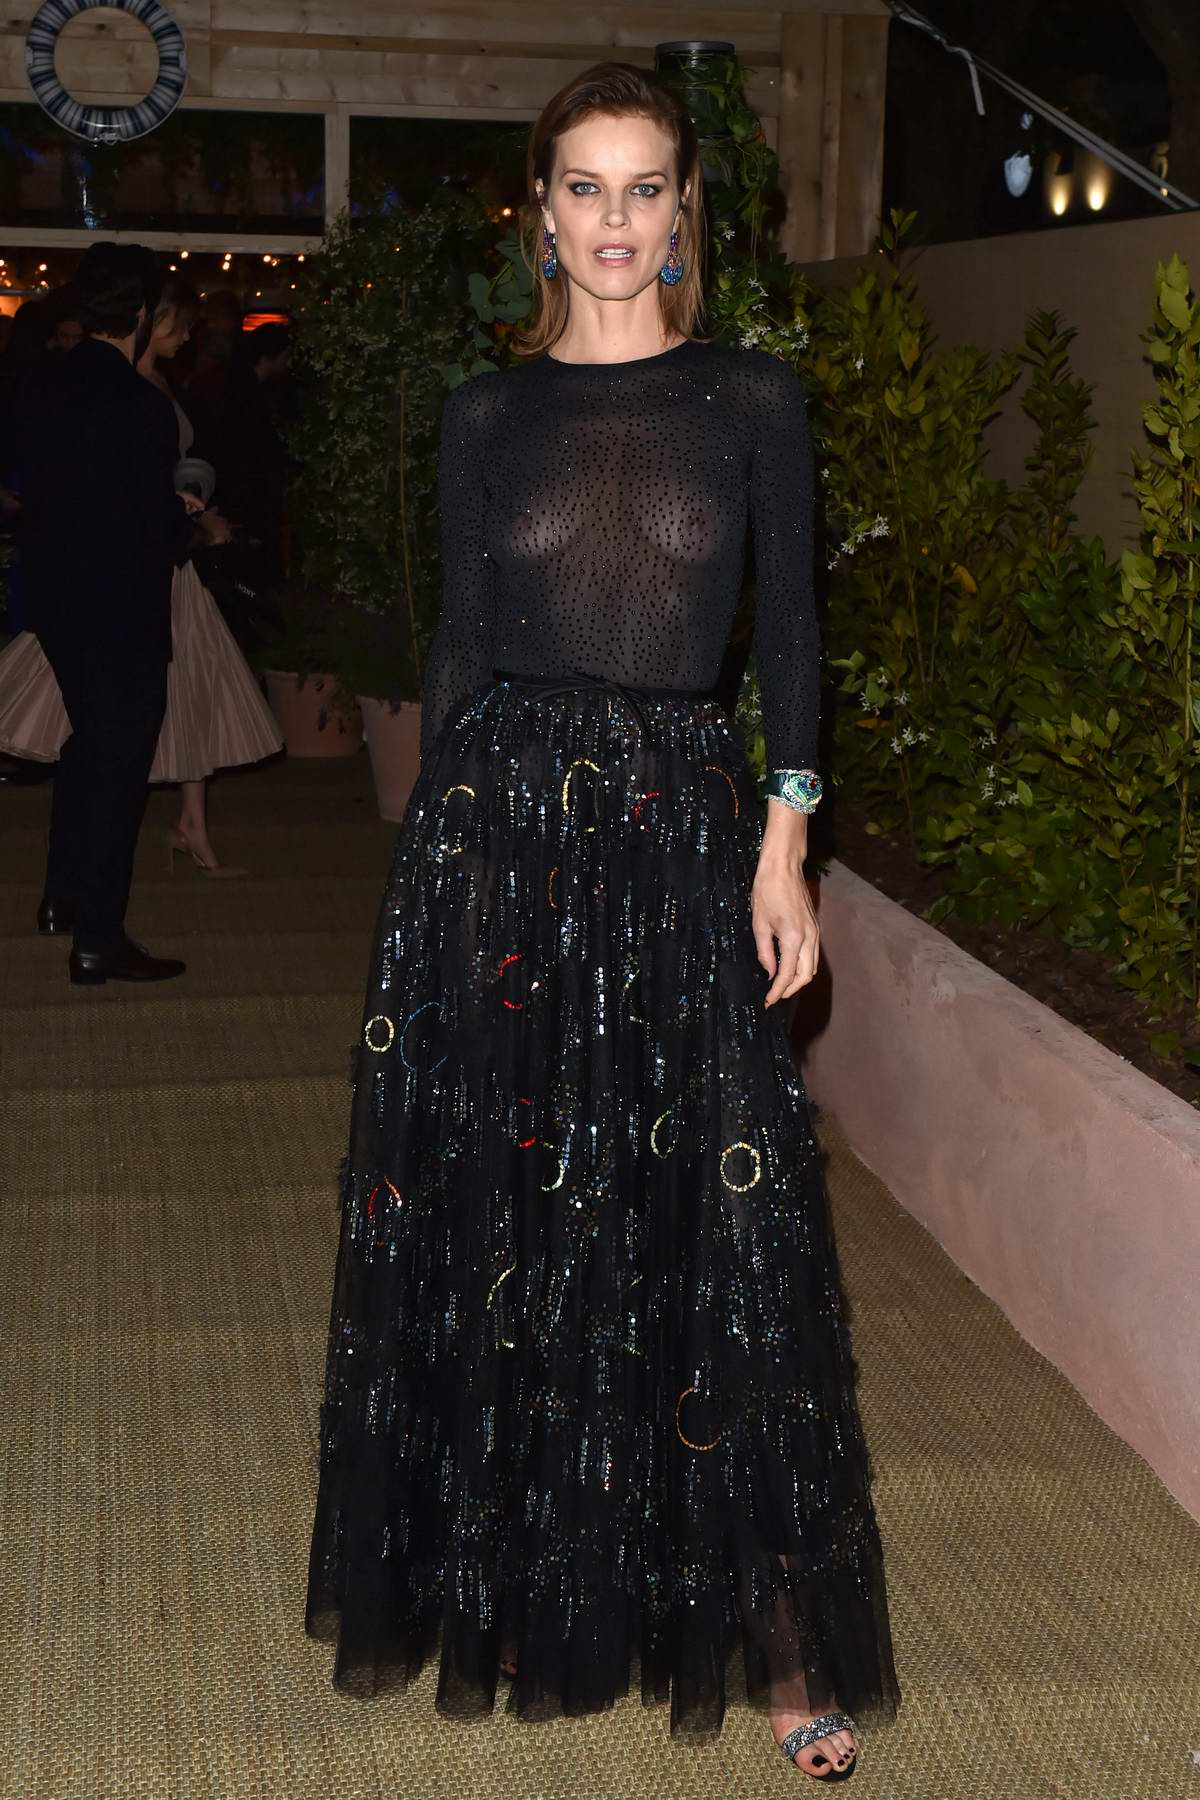 Eva Herzigova attends Dior and Vogue Paris dinner at Fred L'Ecailler in Cannes, France